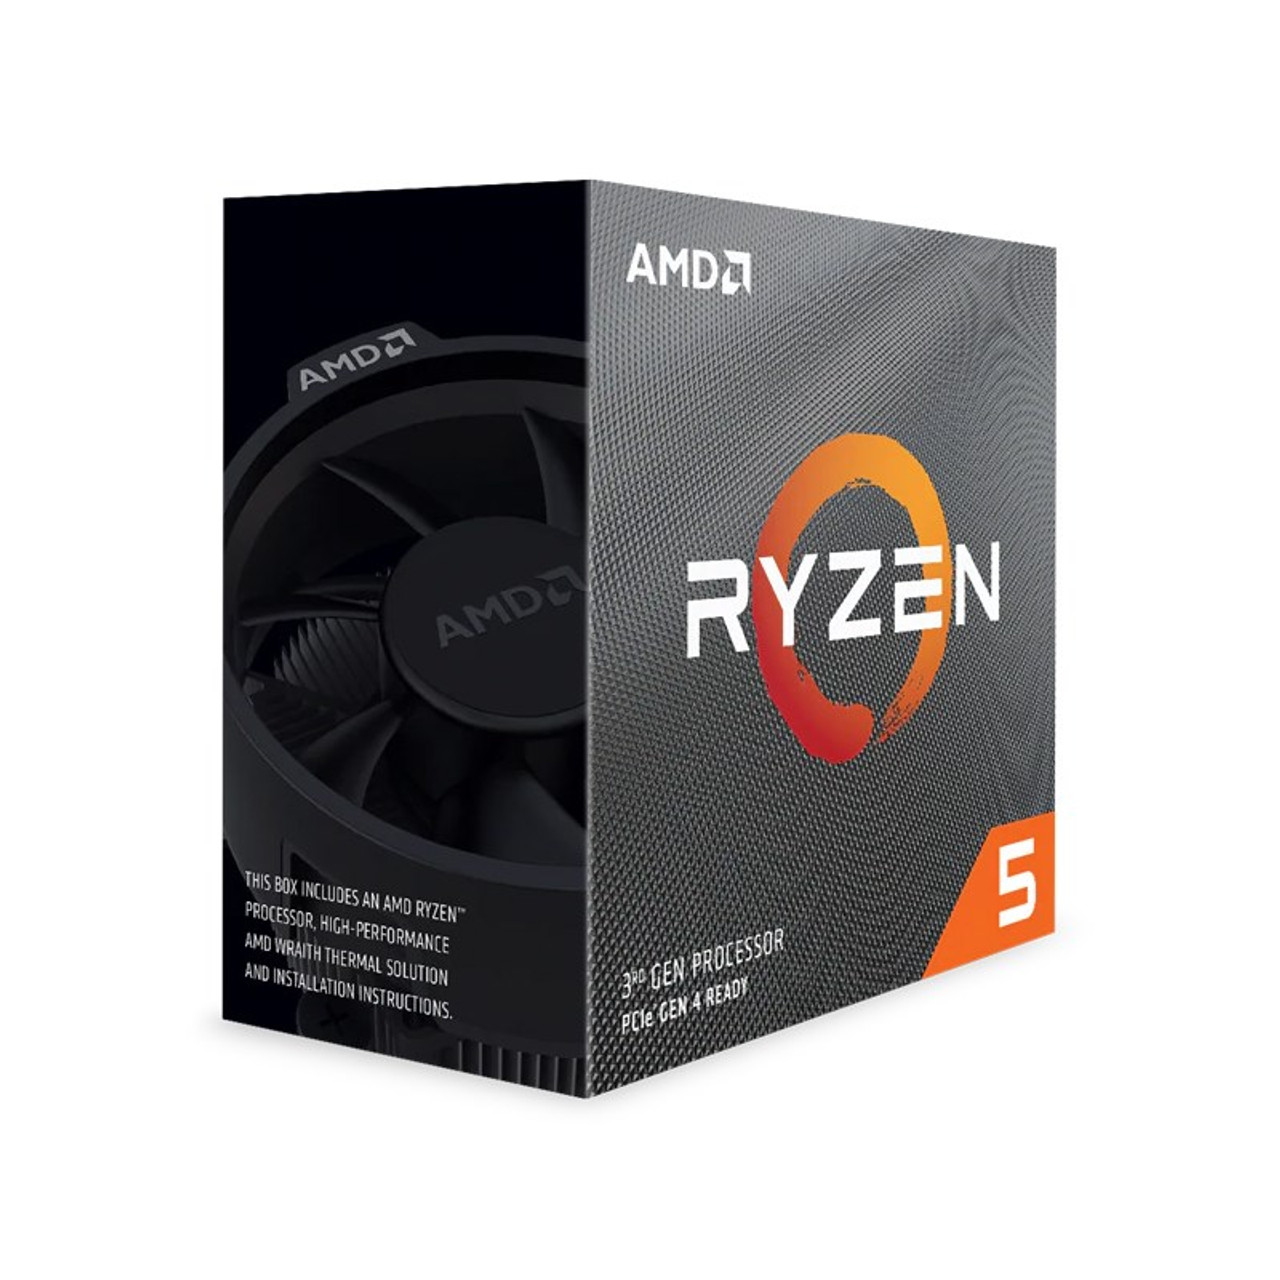 Image for AMD Ryzen 5 3600 6 Core Socket AM4 3.6GHz CPU Processor + Wraith Stealth Cooler CX Computer Superstore